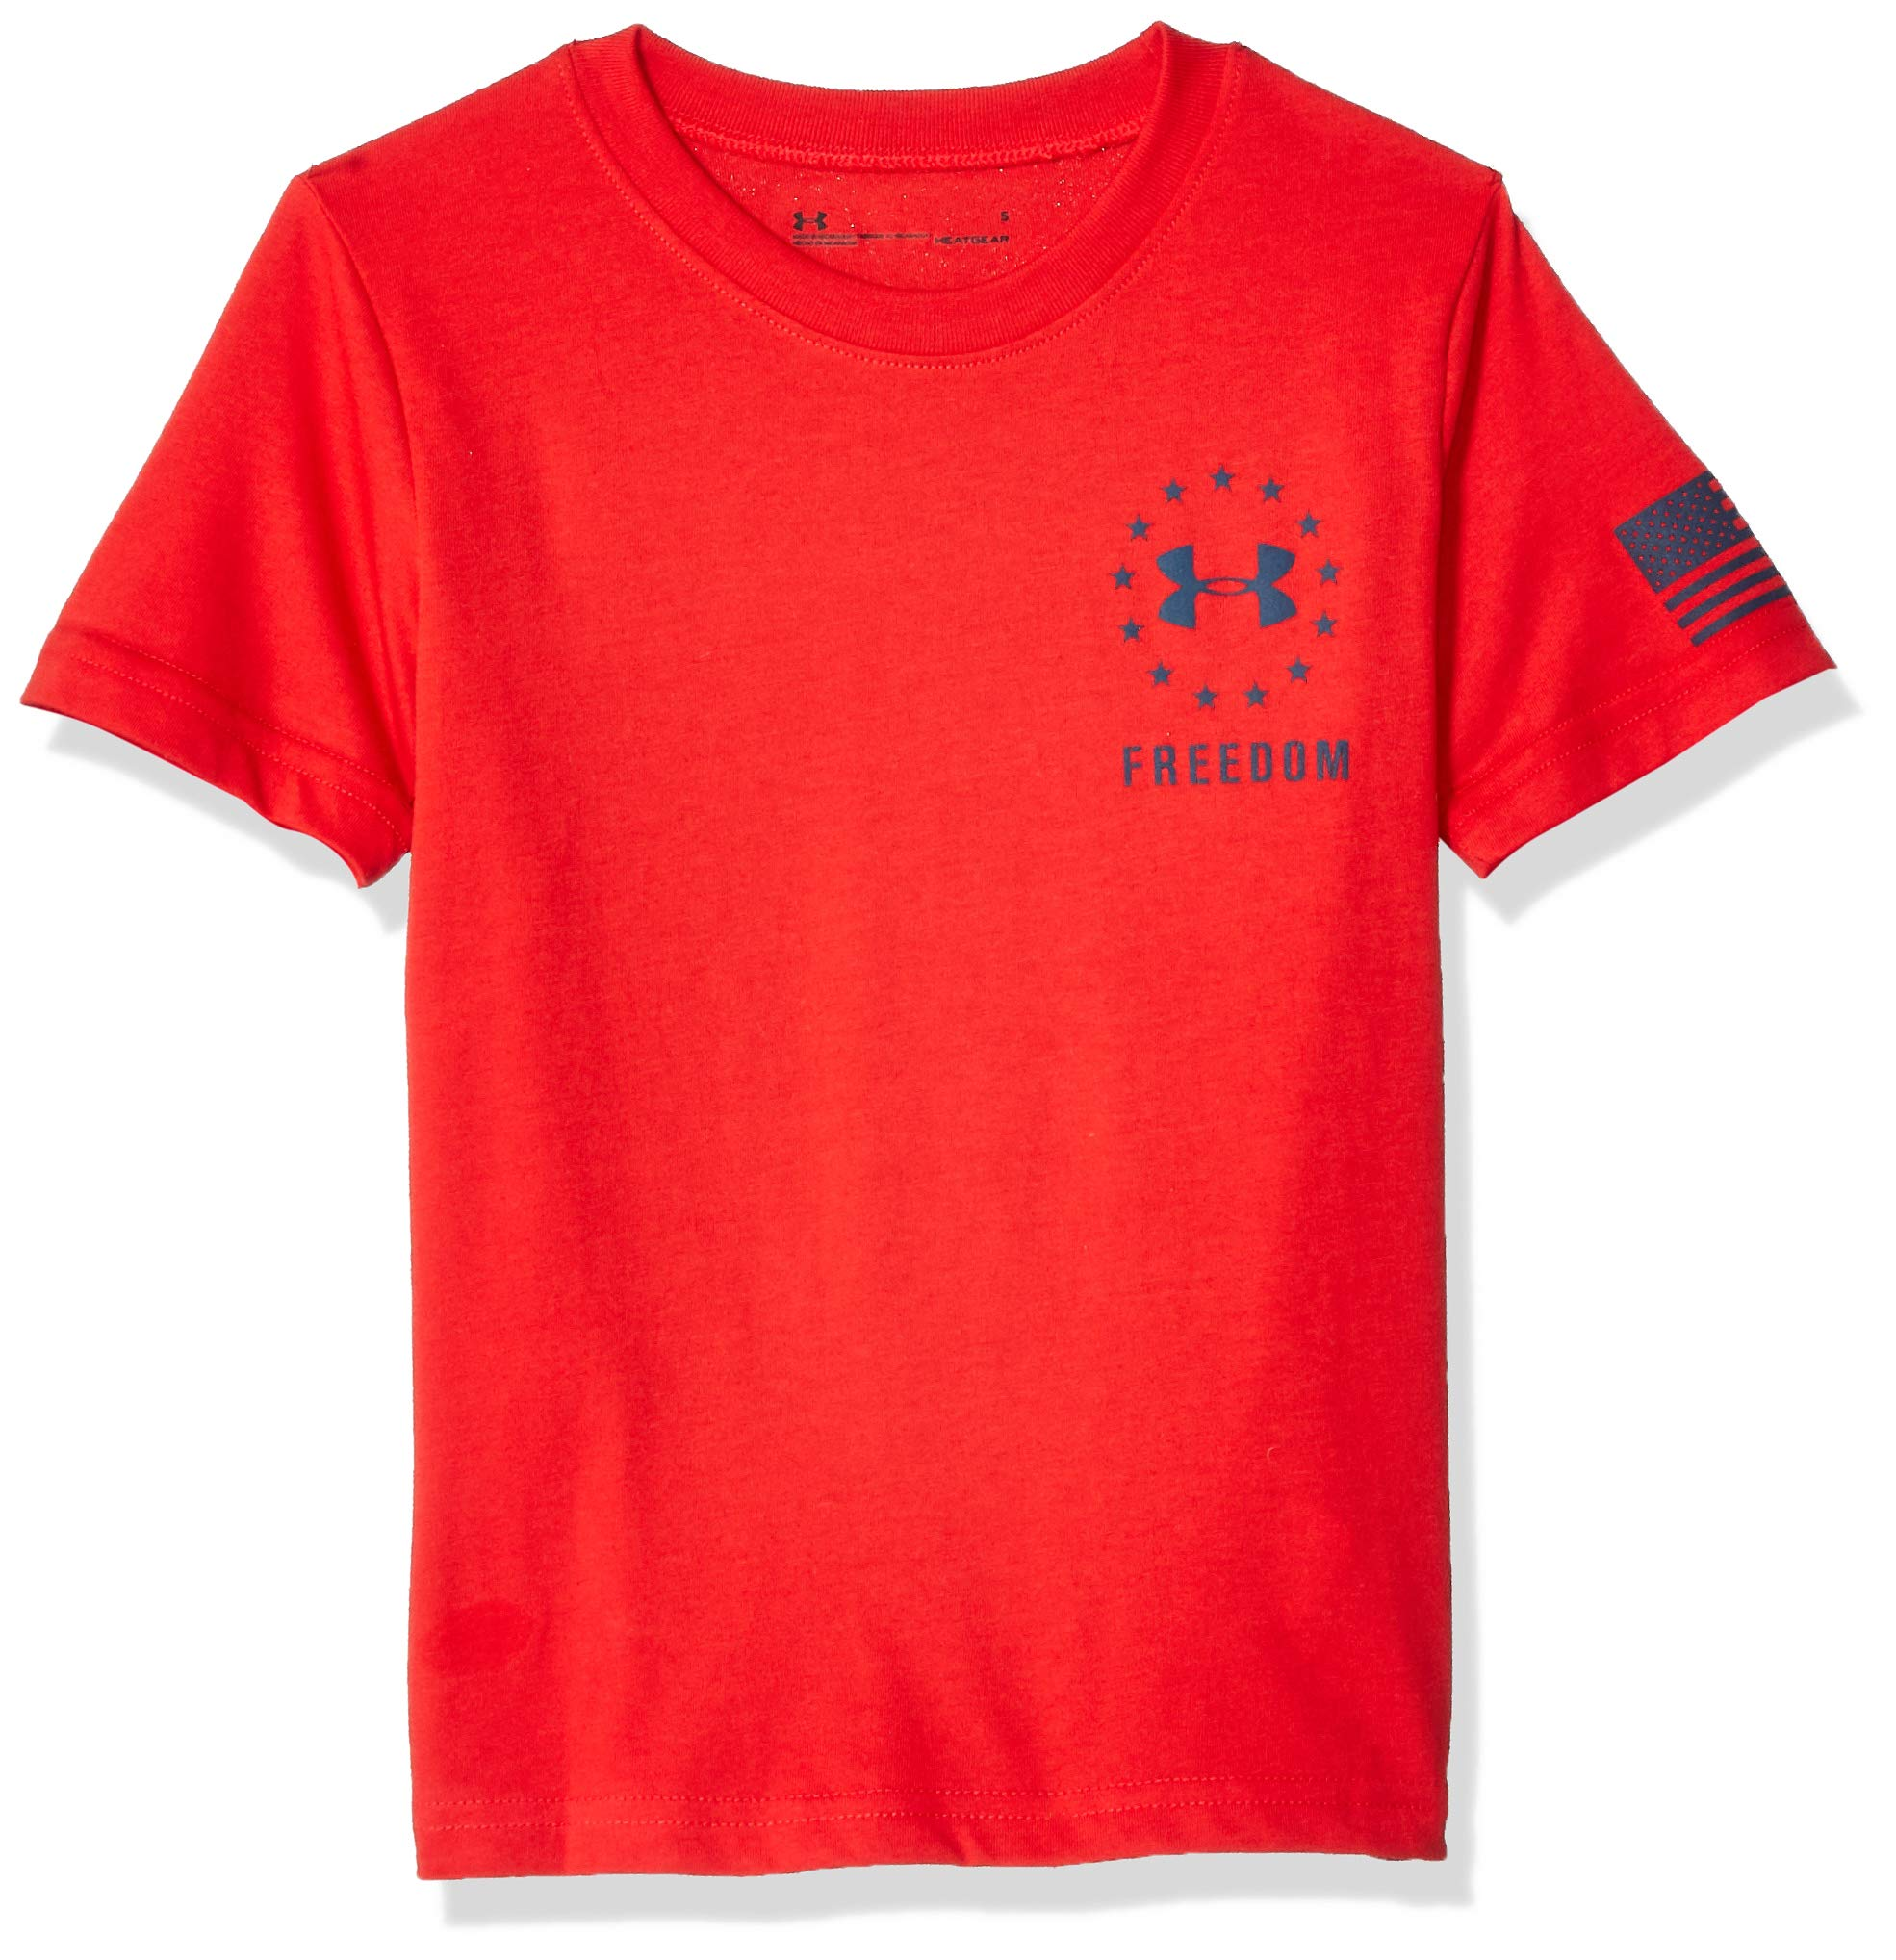 Under Armour Boys' Toddler Graphic SS Tee, red1 600, 3T